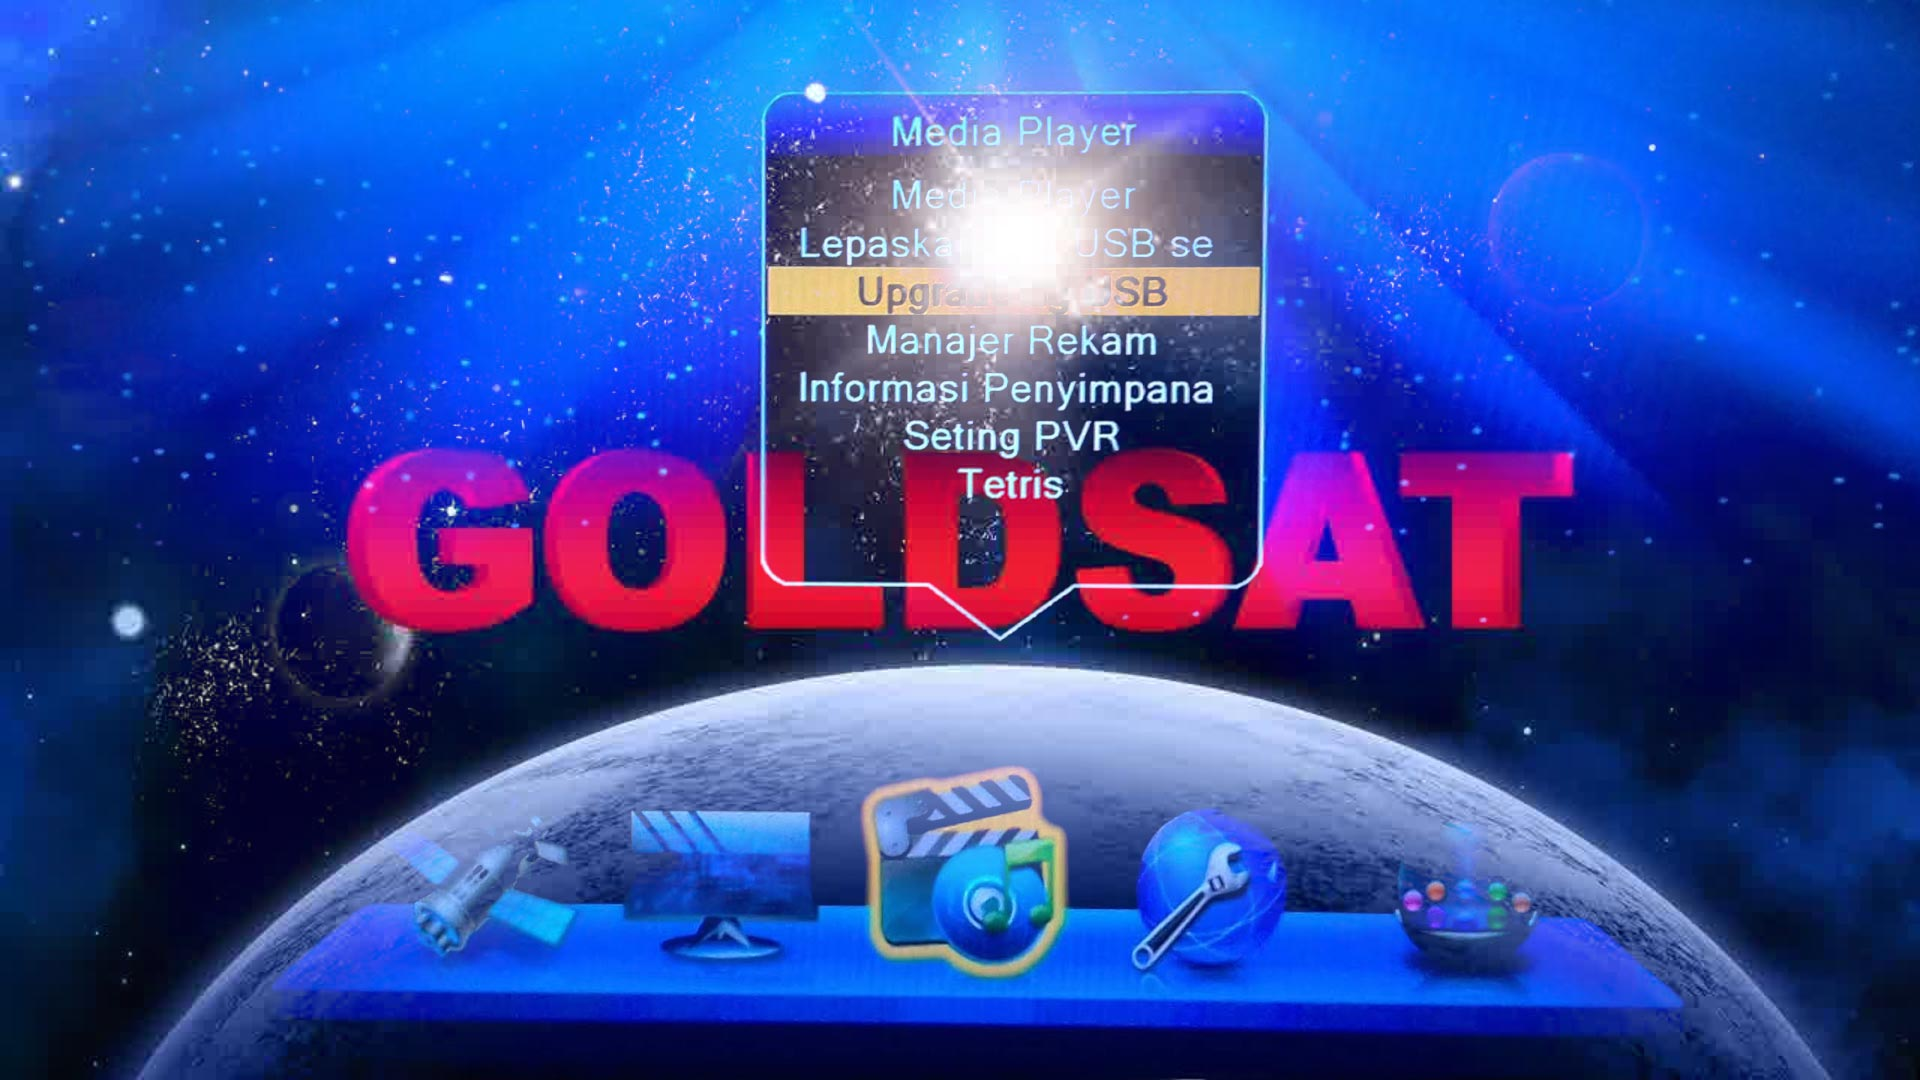 Software Goldsat HD ALI3510C Auto Biss Key Terbaru